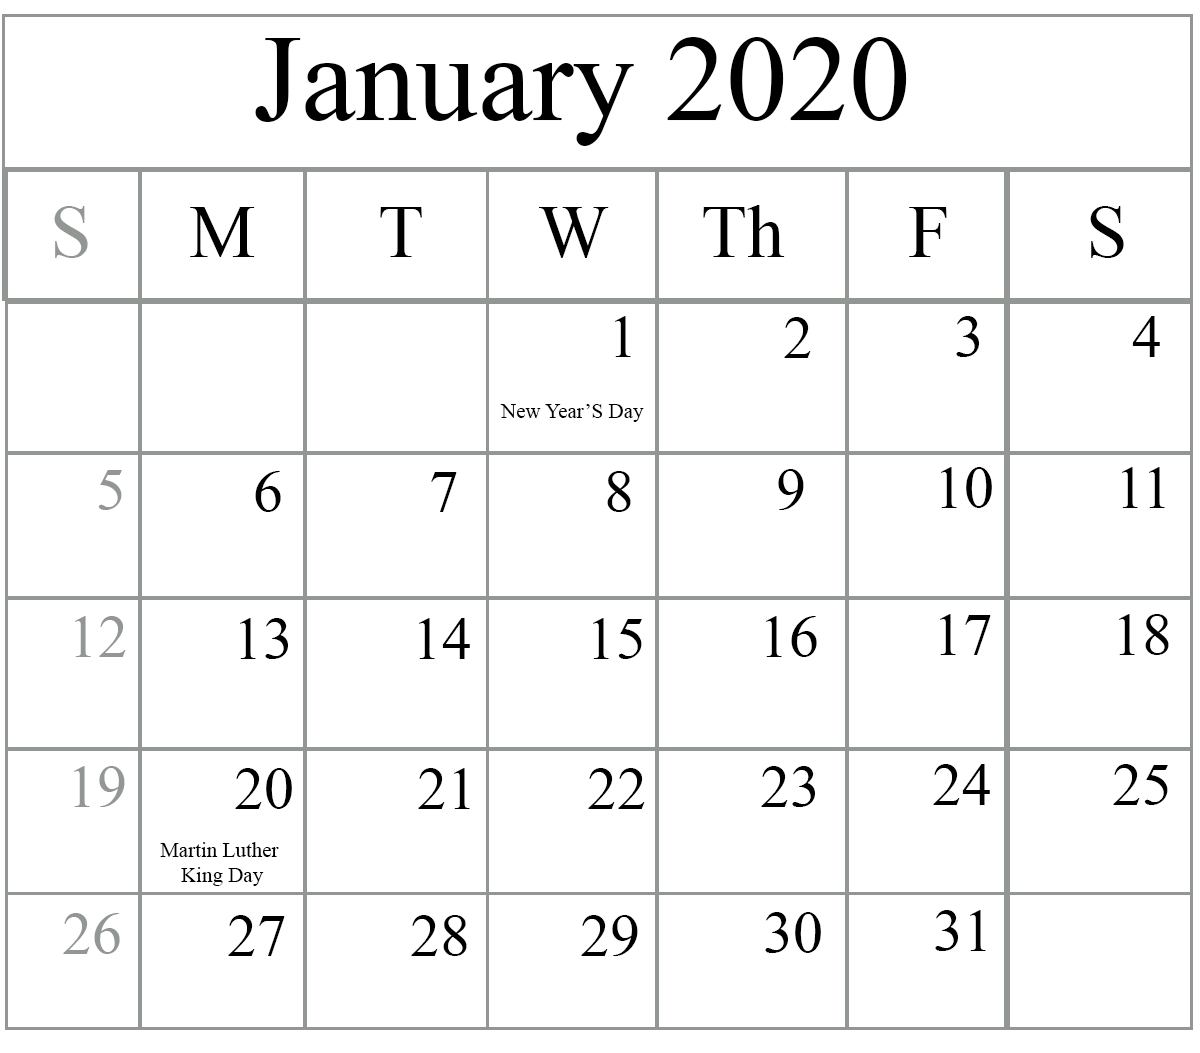 Free January 2020 Printable Calendar In Pdf, Excel & Word within Free Printable 2020 Calendar To I Can Edit